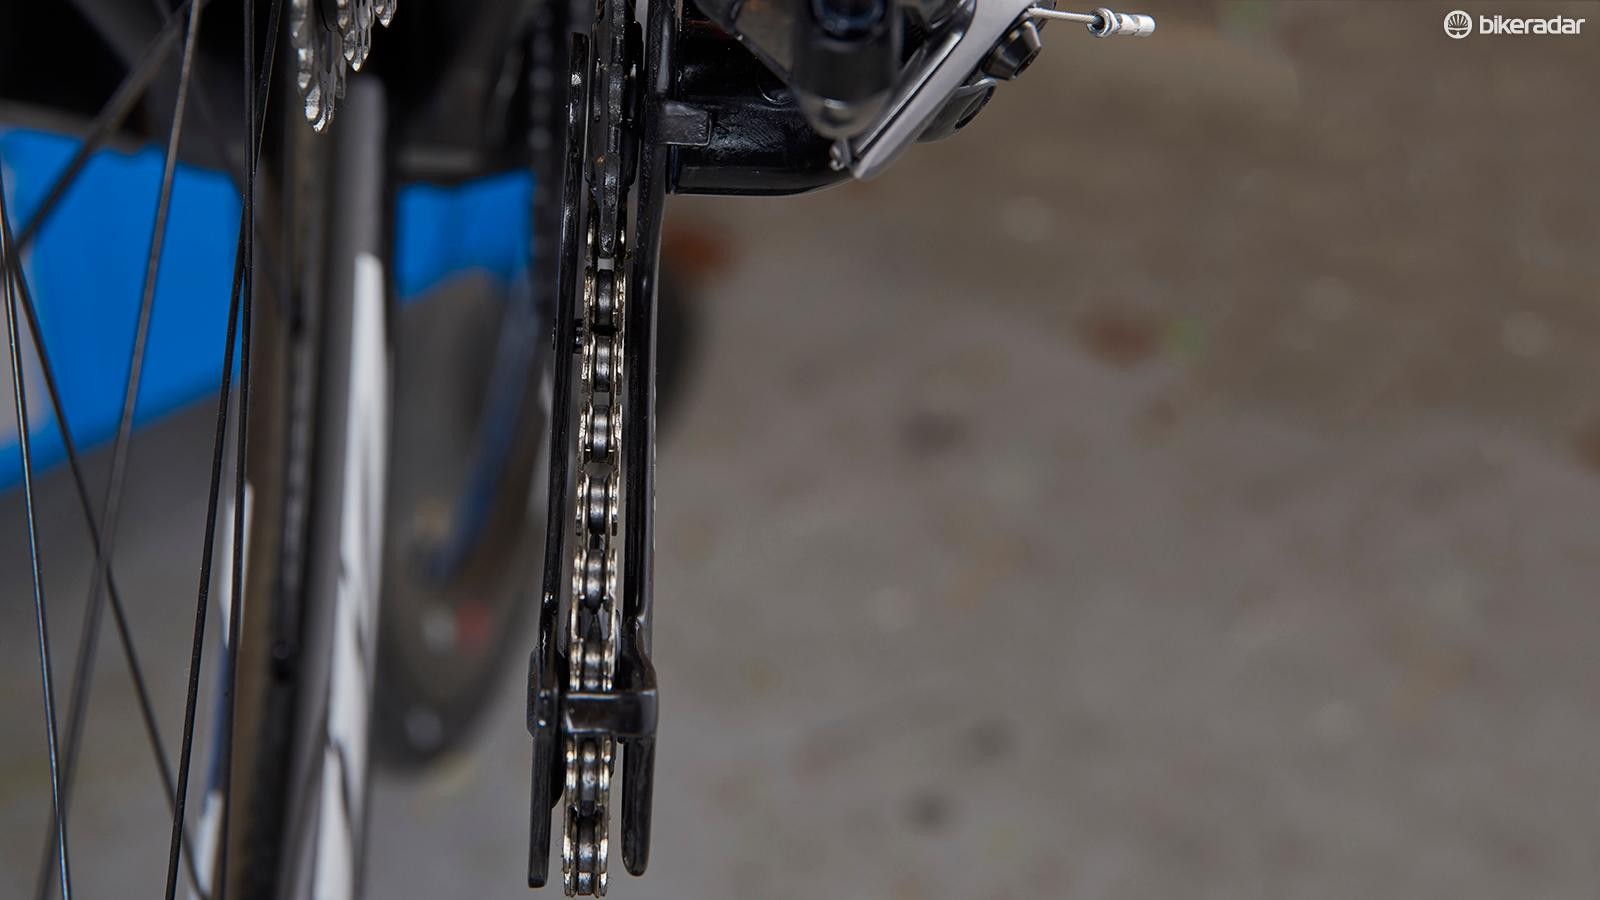 If your chain is making noises, check your rear mech hanger